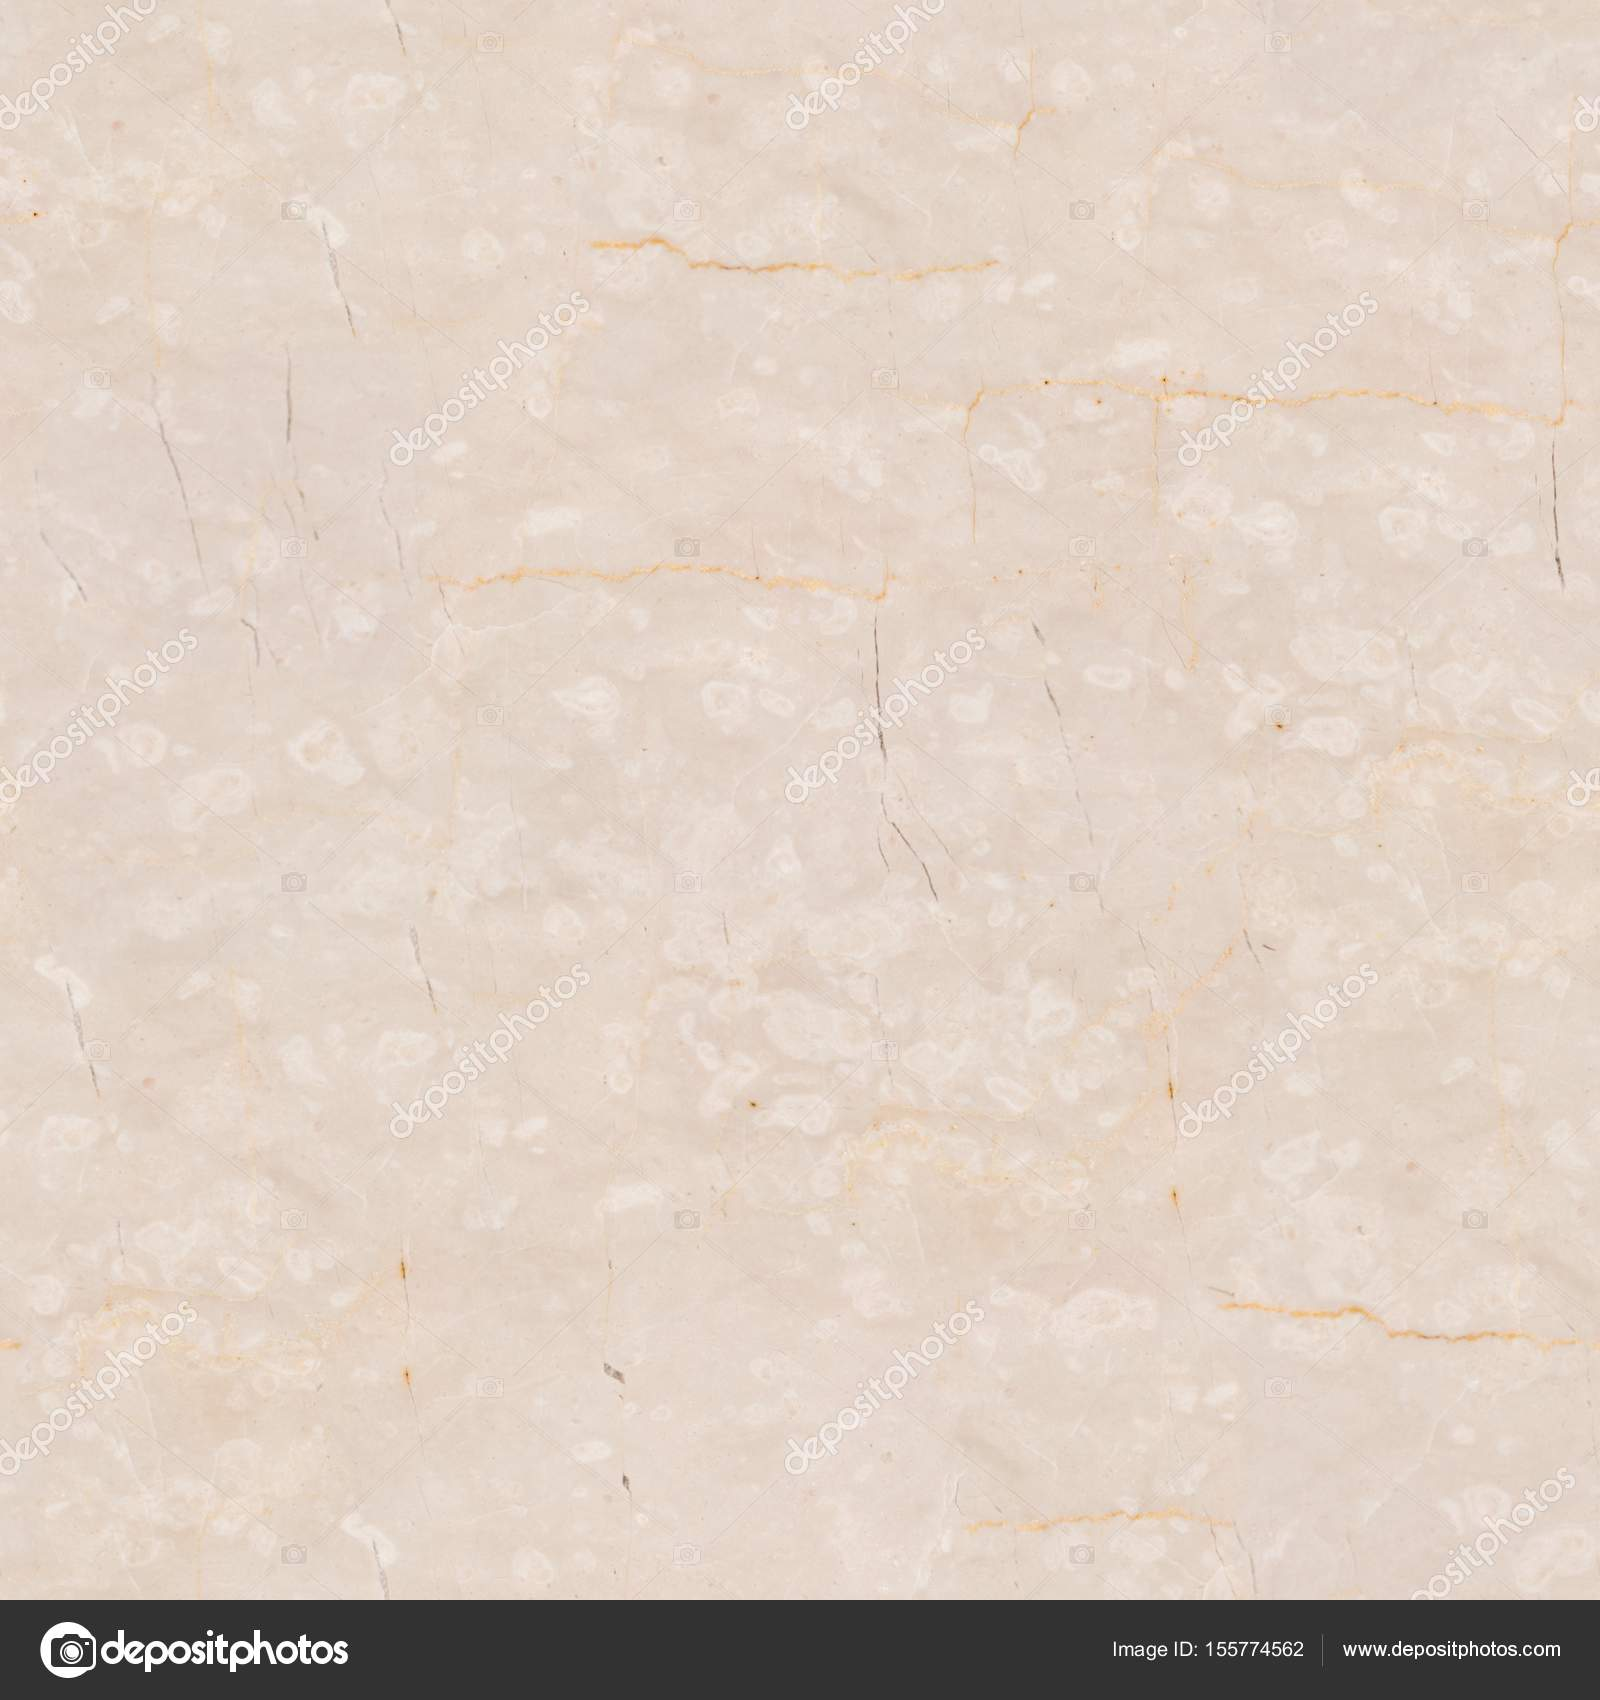 Close Up Of Seamless Beige Marble Stone Tile Texture Square Background Ready High Resolution Photo By Yamabikay